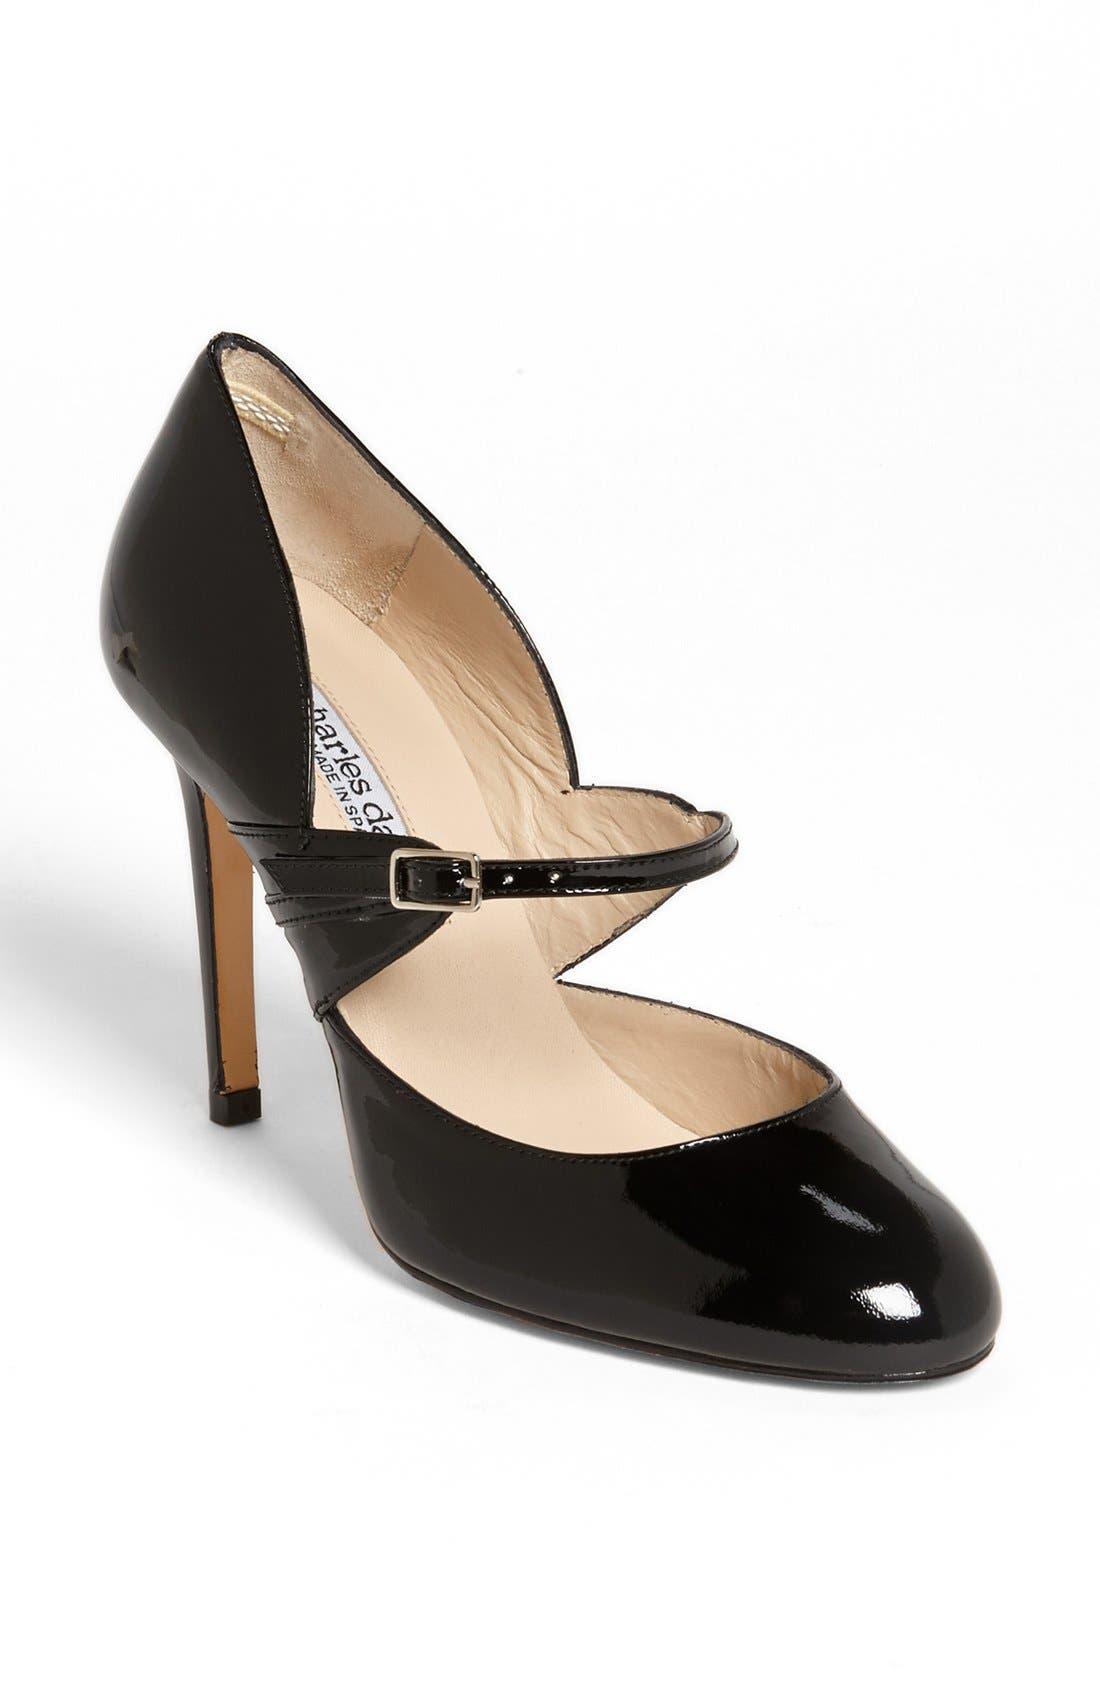 Main Image - Charles David 'Valencia' Pump